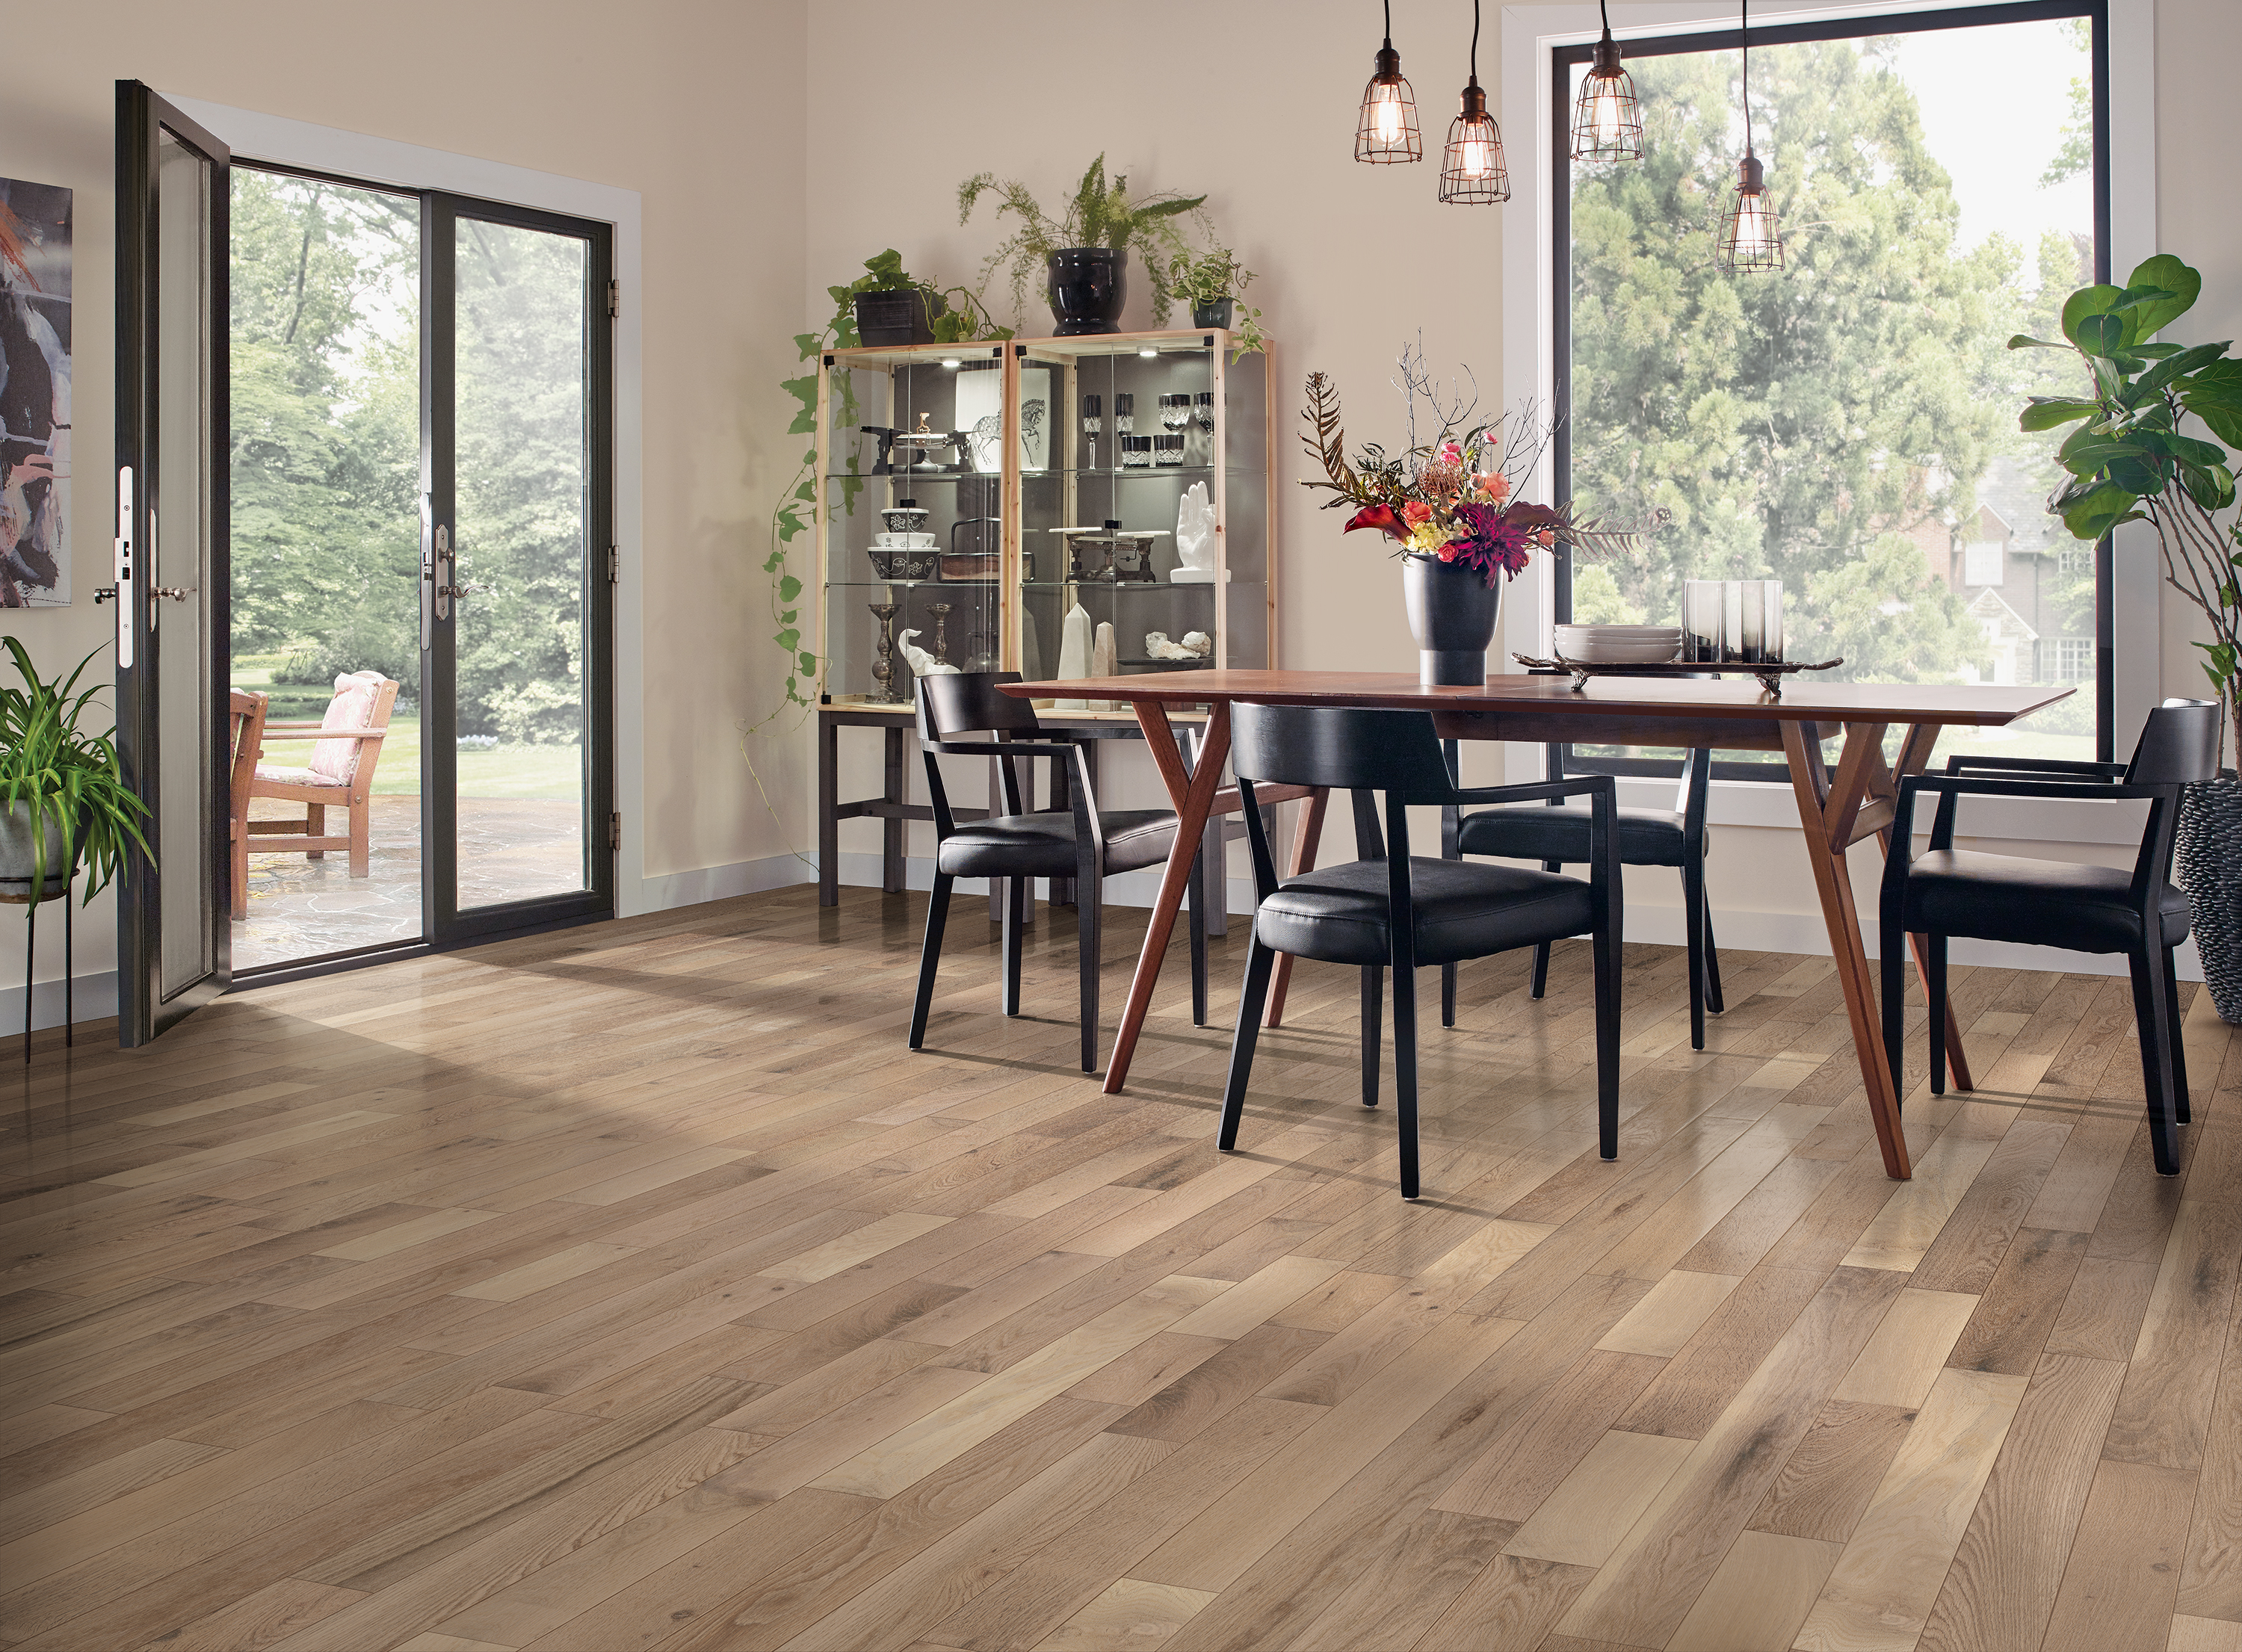 Dundee Inviting Warmth Solid Hardwood CB4230LG